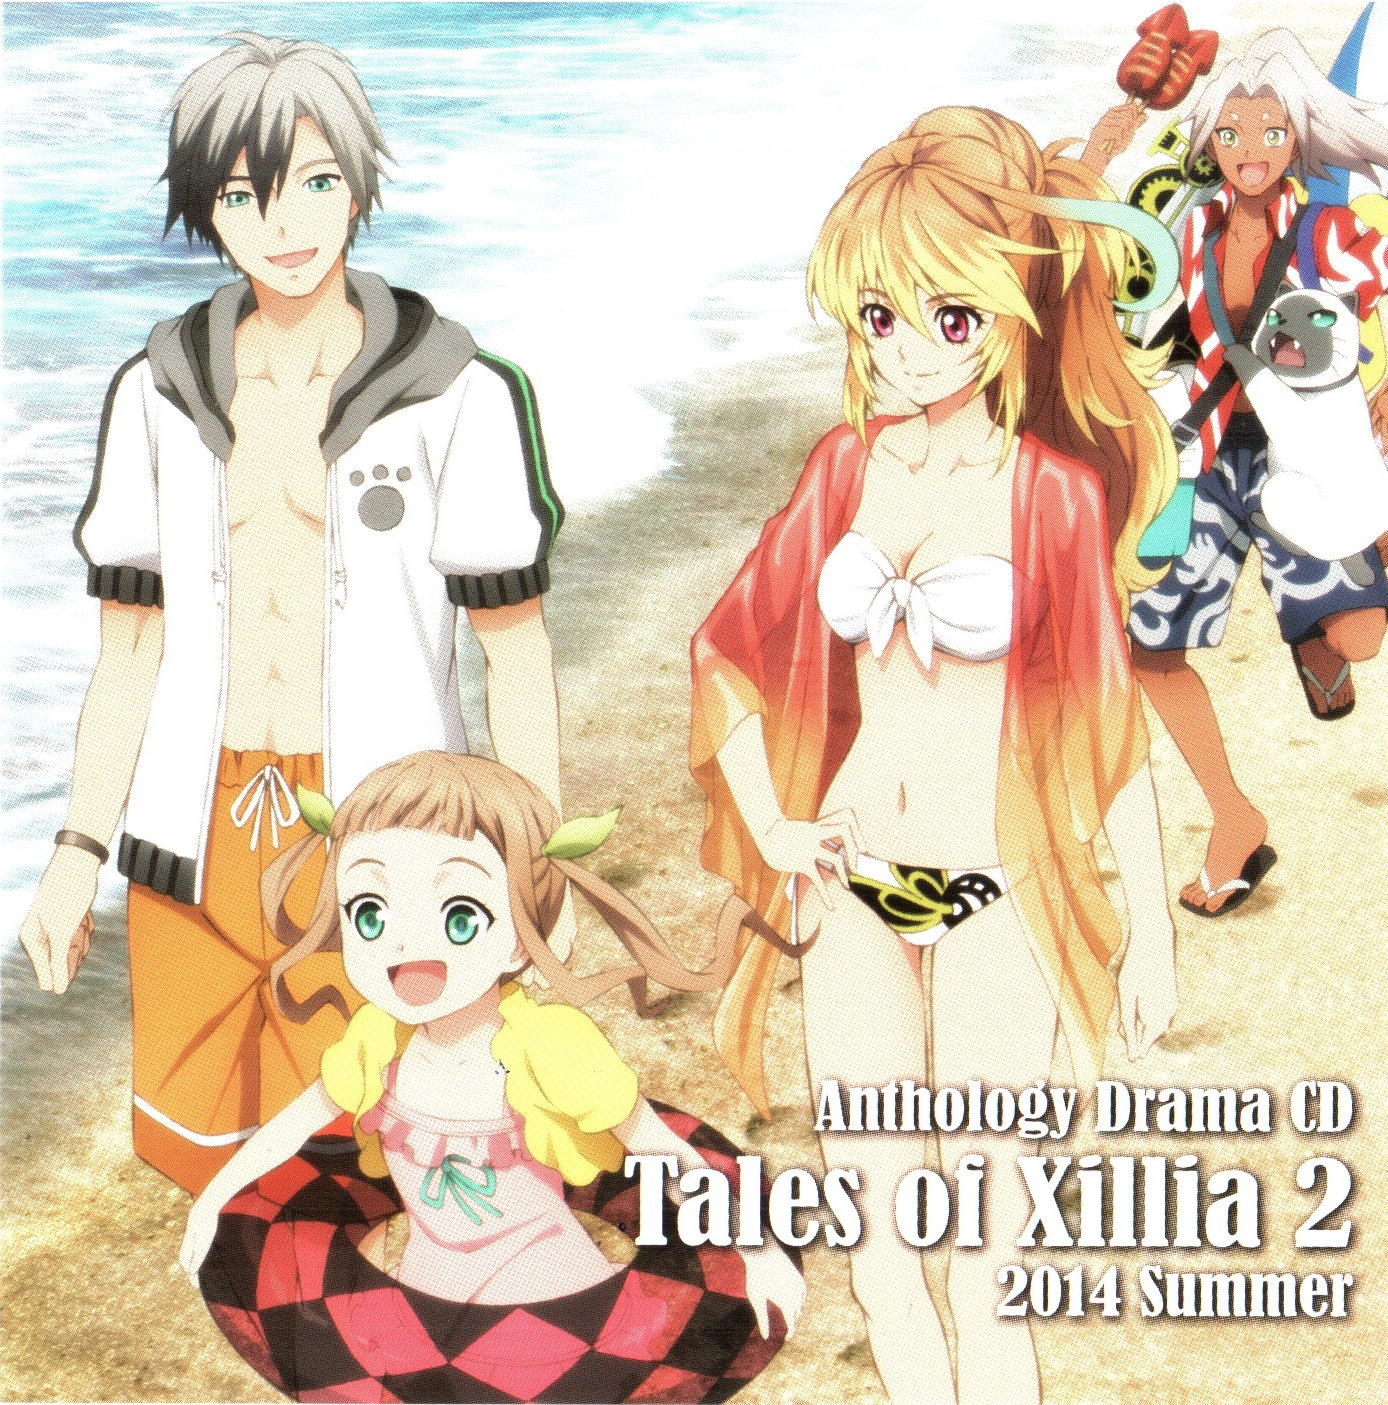 Tales Of Xillia 2 2014 Summer Anthology Drama Cd Mp3 Download